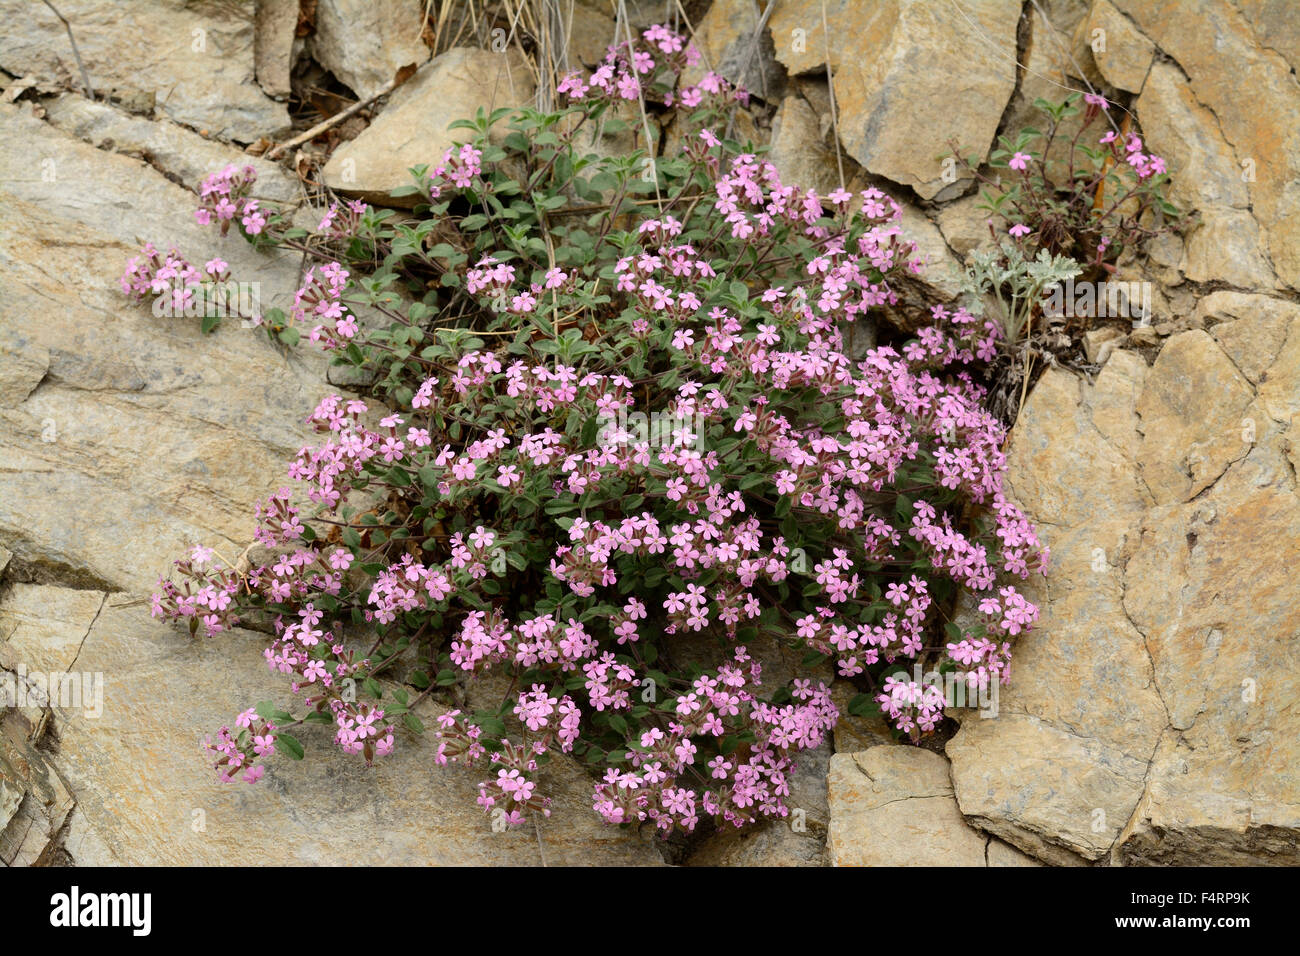 Bouncing Bet, Common Soapwort, Saponaria officinalis, Caryophyllaceae, flower, blossoms, plant, Getwing, Canton, - Stock Image